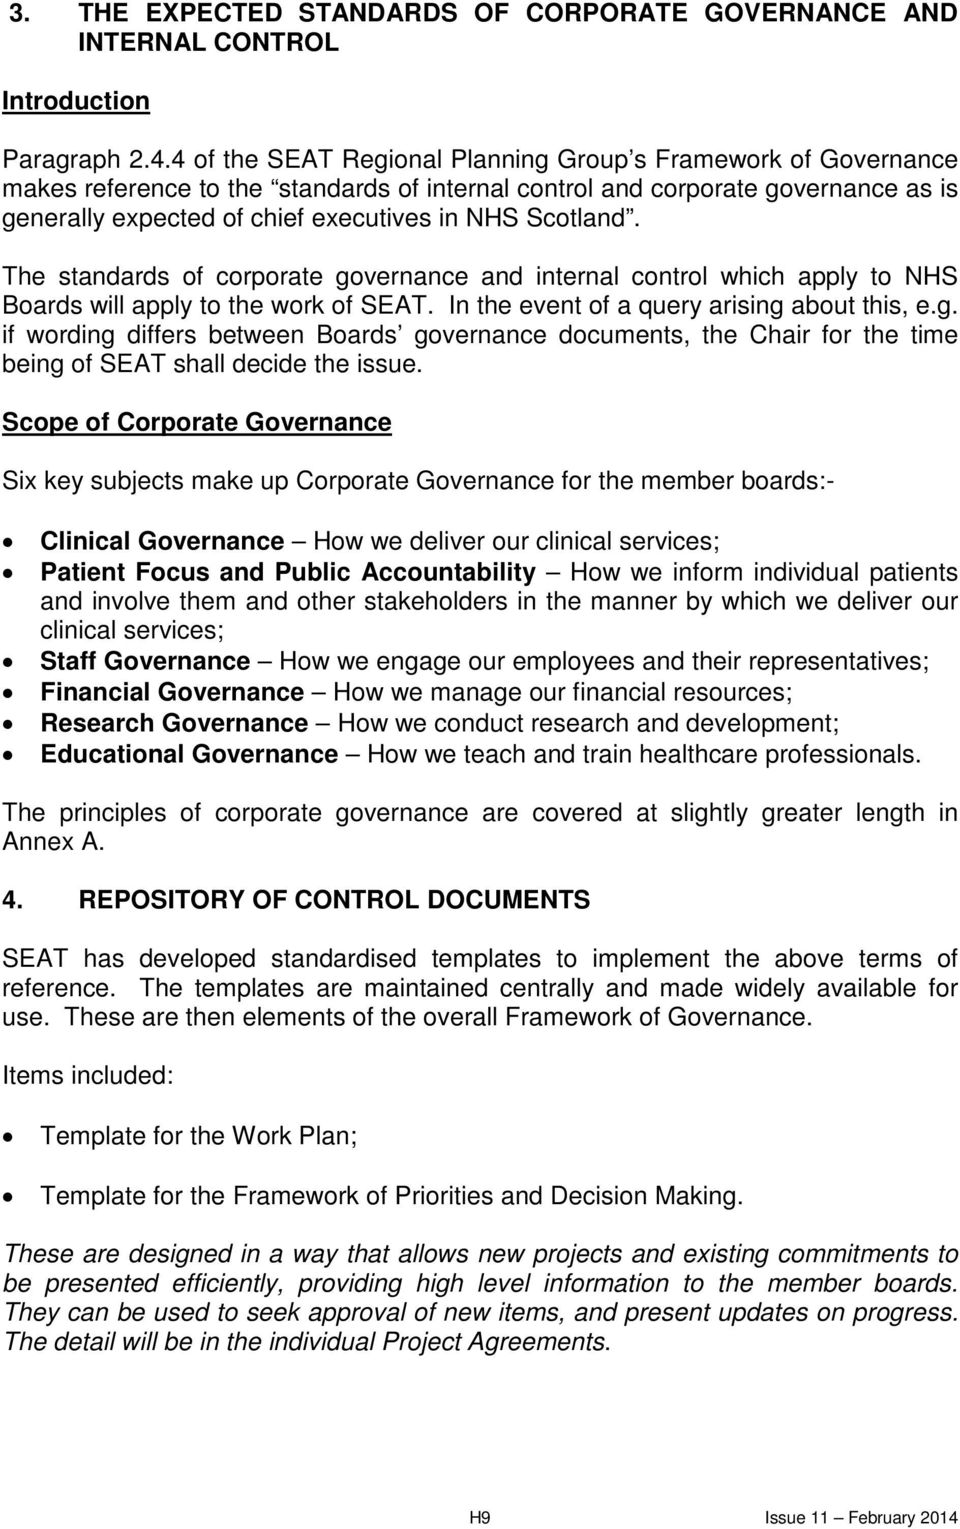 Scotland. The standards of corporate governance and internal control which apply to NHS Boards will apply to the work of SEAT. In the event of a query arising about this, e.g. if wording differs between Boards governance documents, the Chair for the time being of SEAT shall decide the issue.